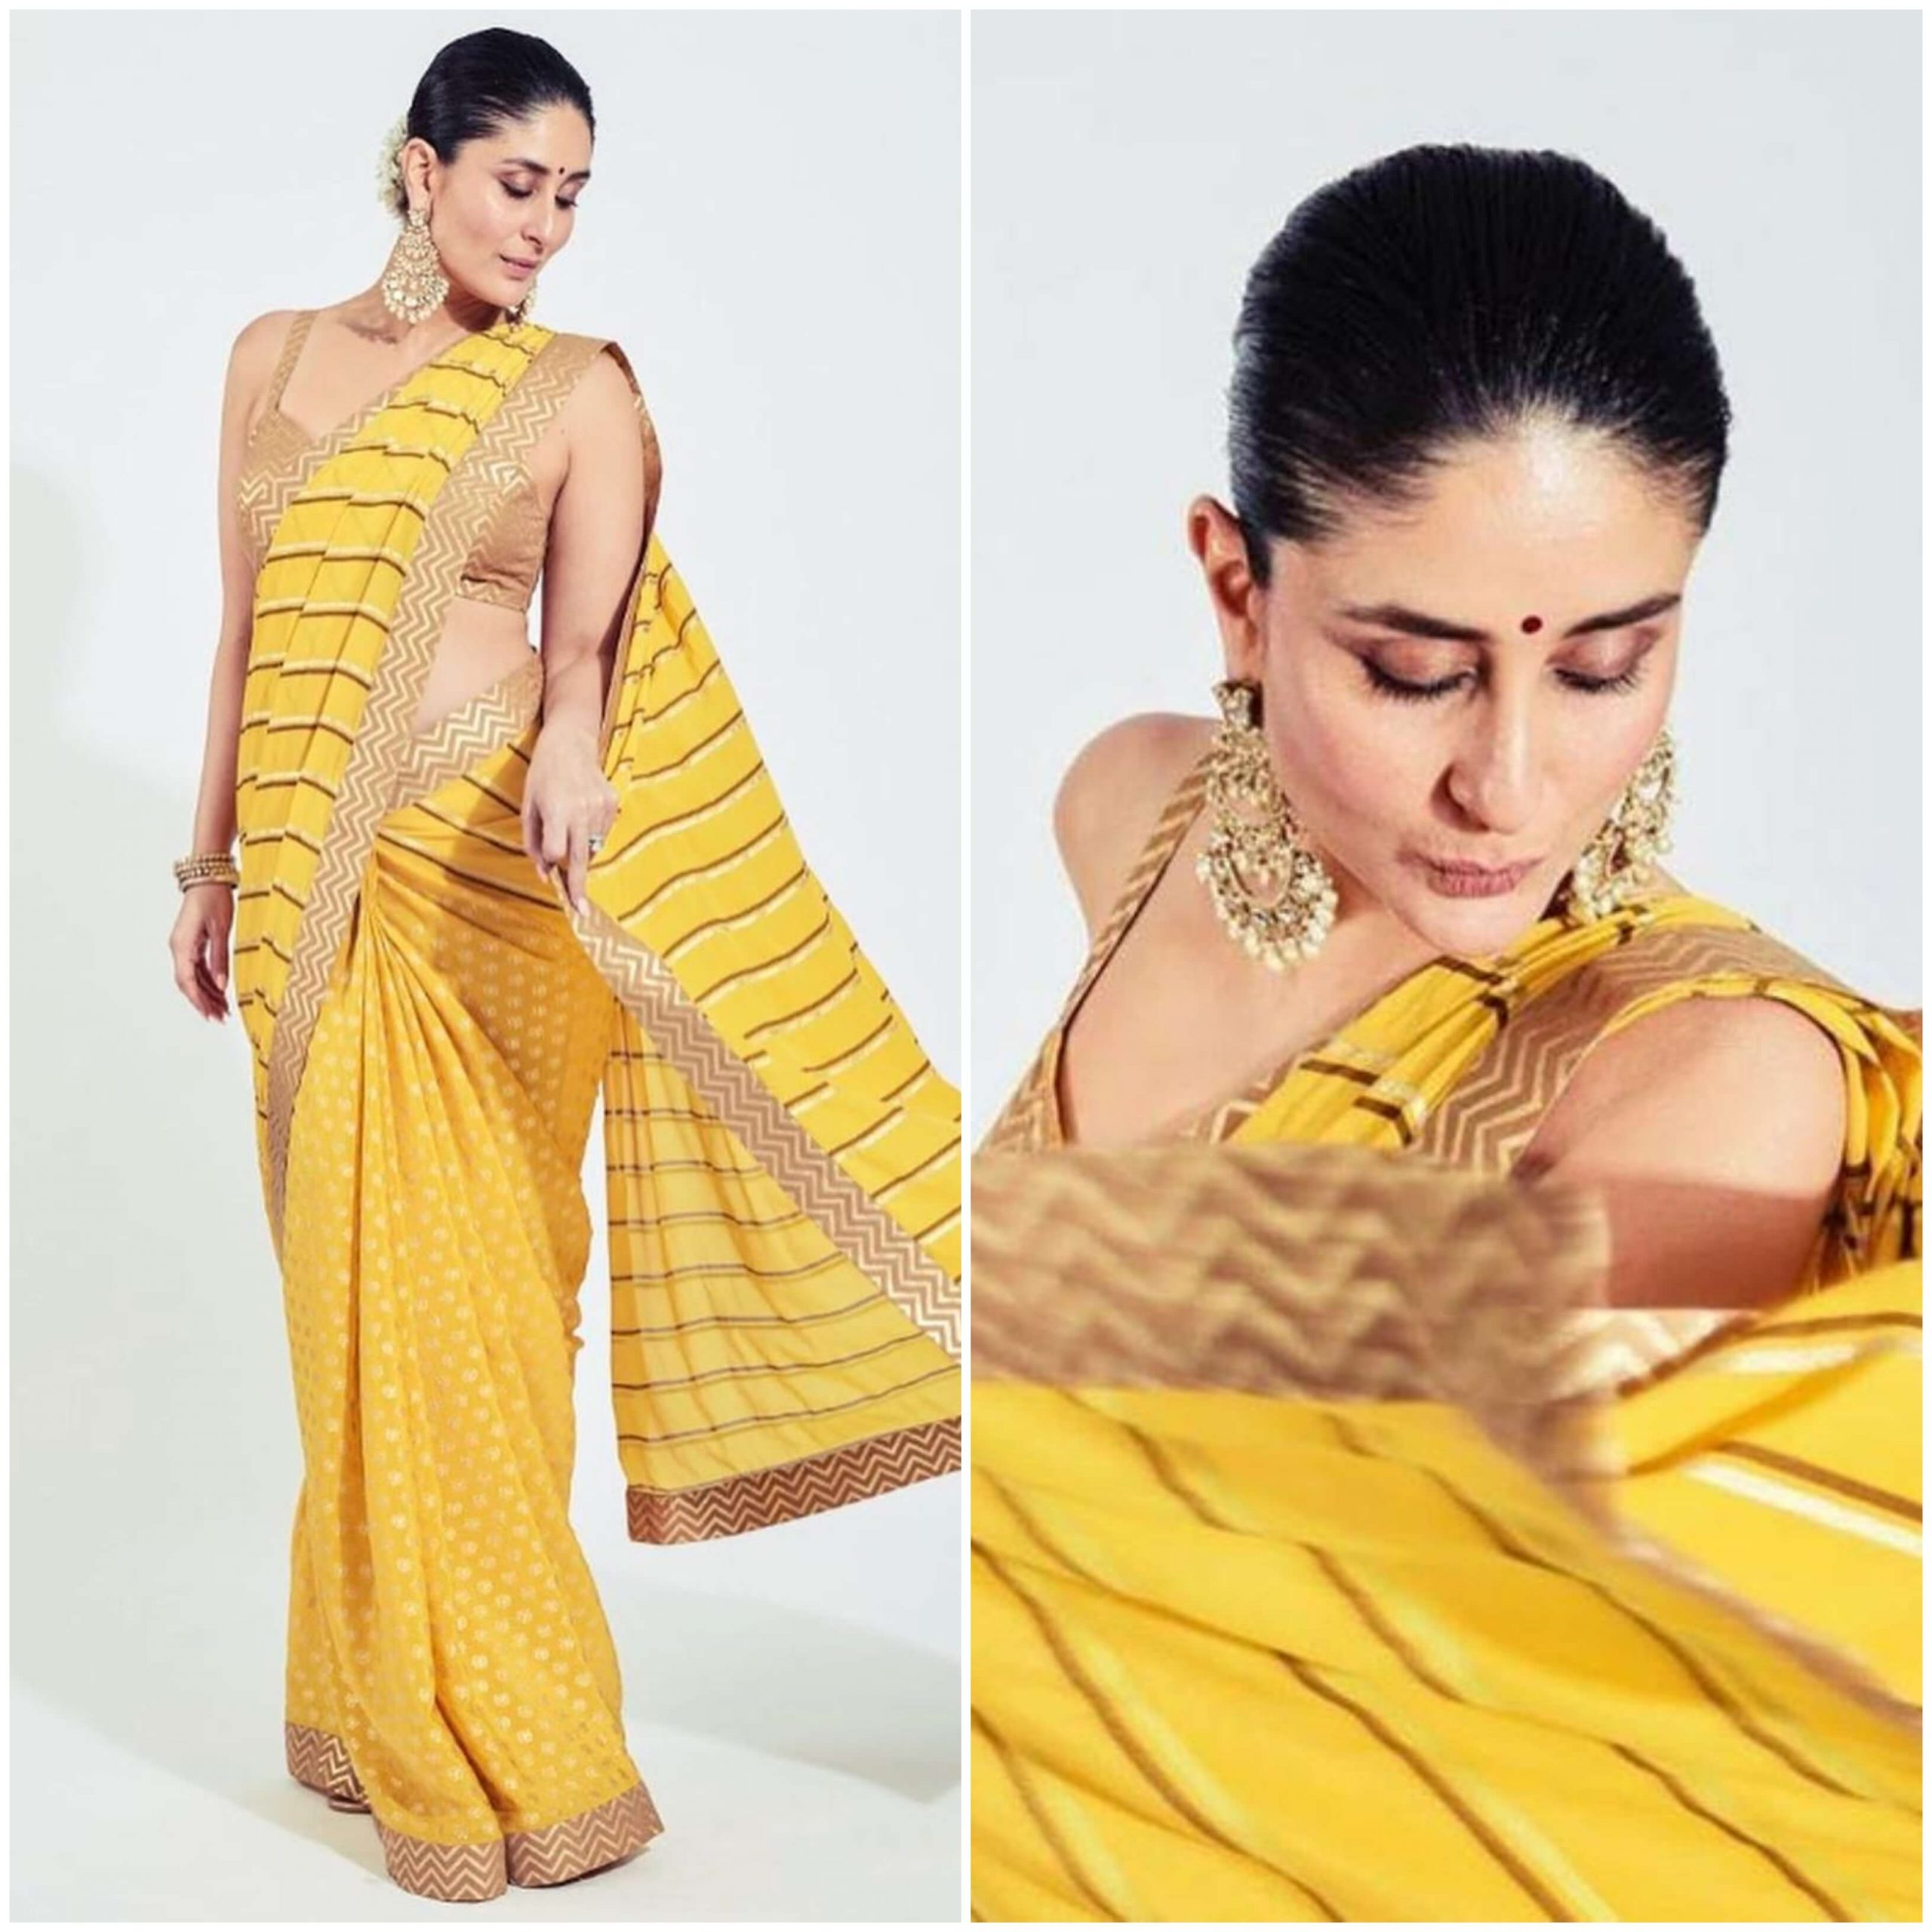 Kareena Kapoor Western union of saree Traditional Yellow Outfits for Indian Festivals